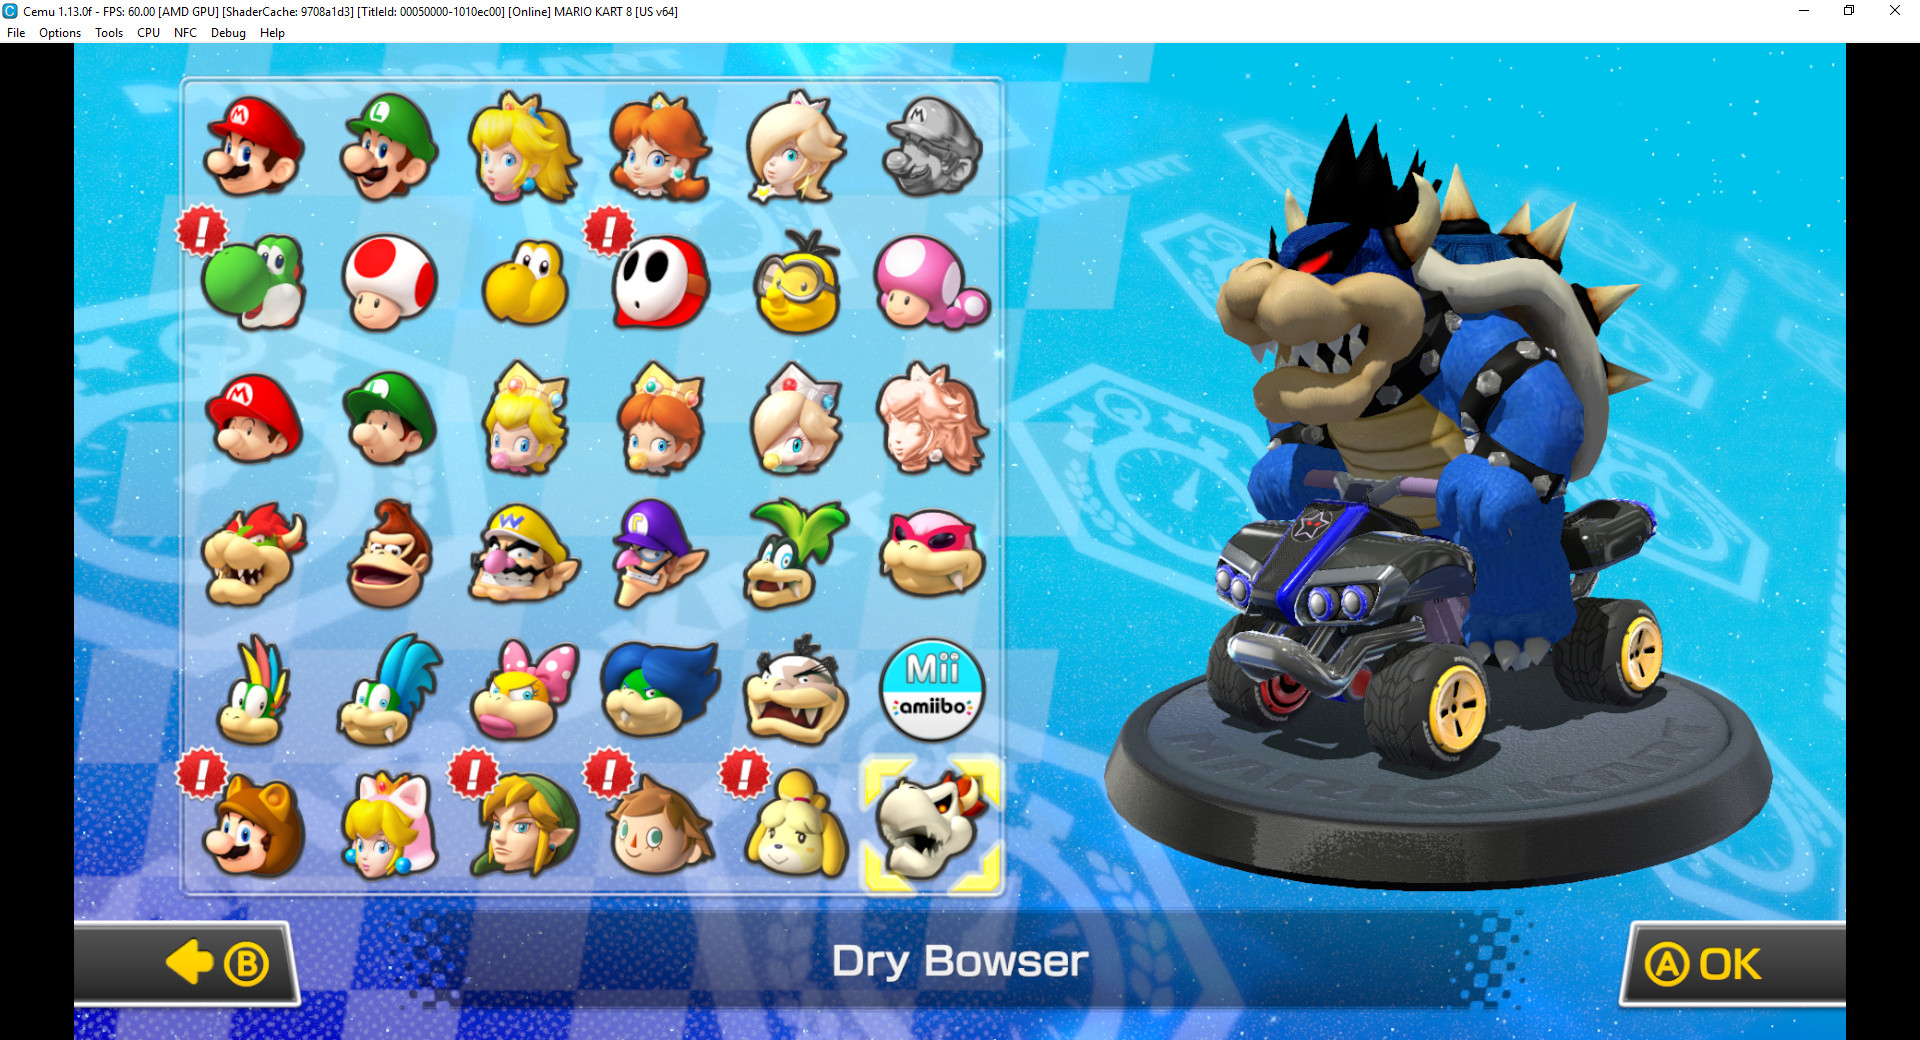 Dark Bowser Model Edit Complete Mario Kart 8 Works In